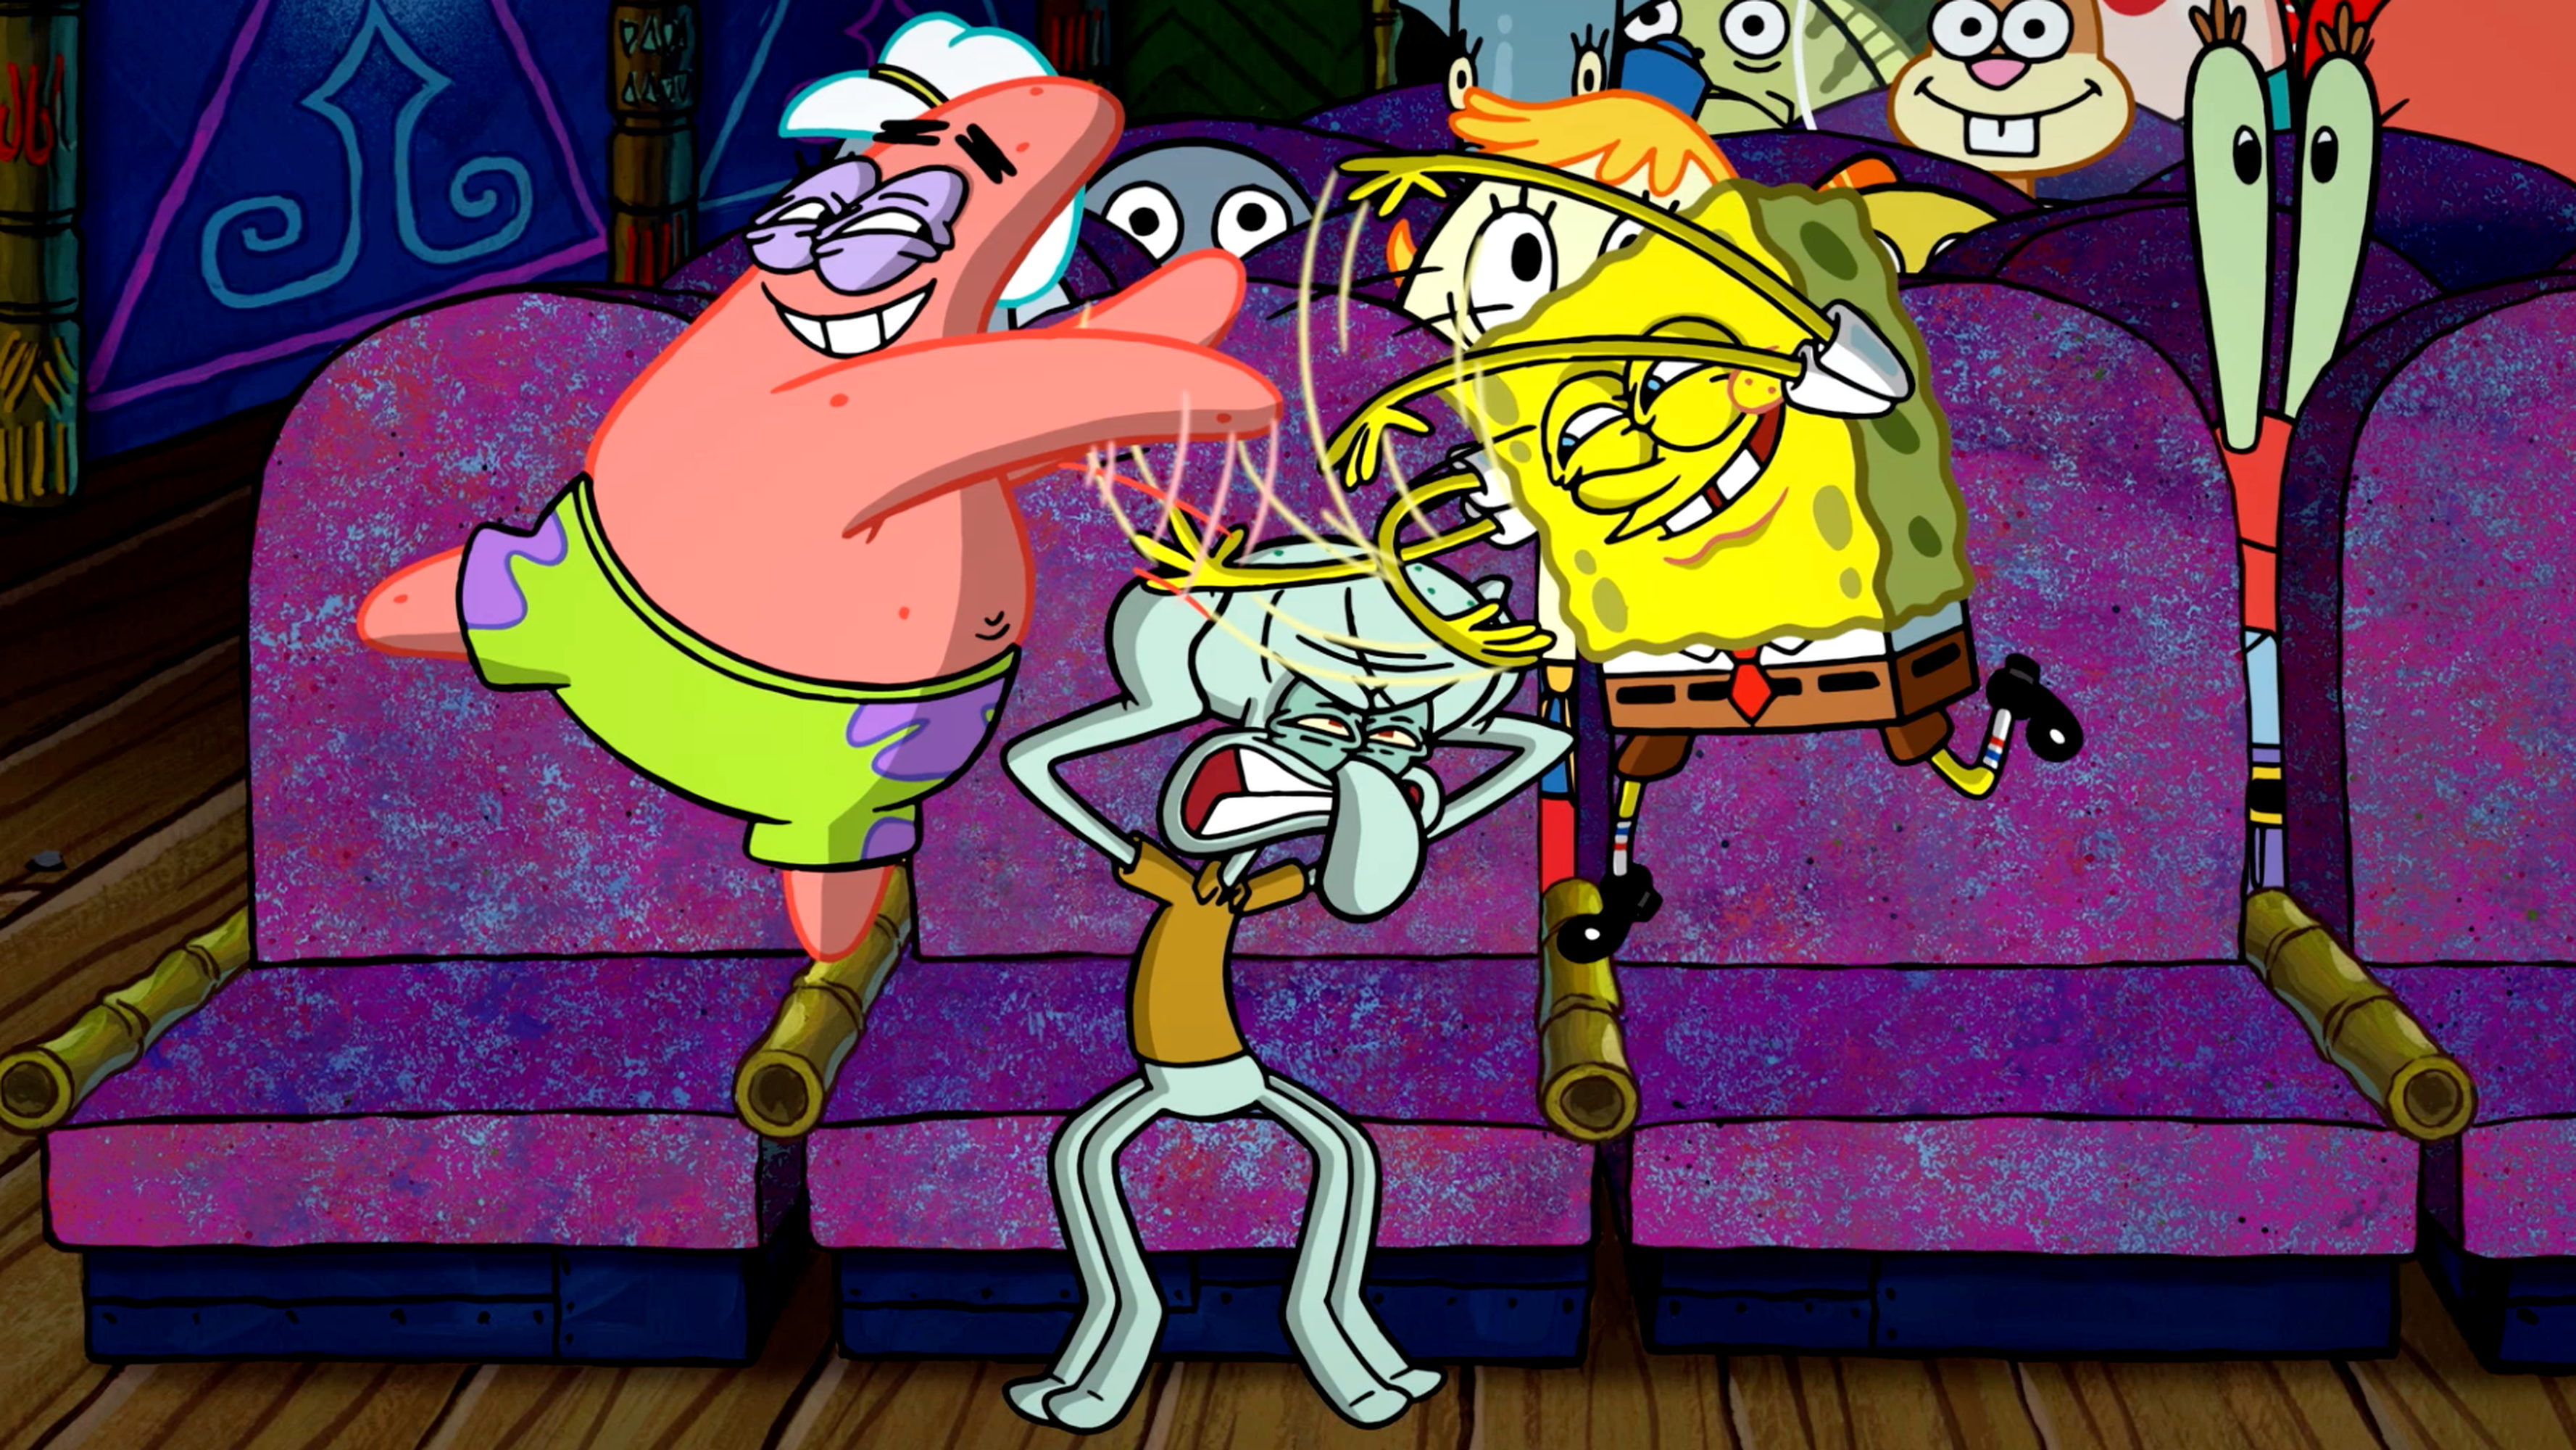 SpongeBob SquarePants is celebrating its 20th birthday and Nickelodeon is making sure that everyone comes to the party